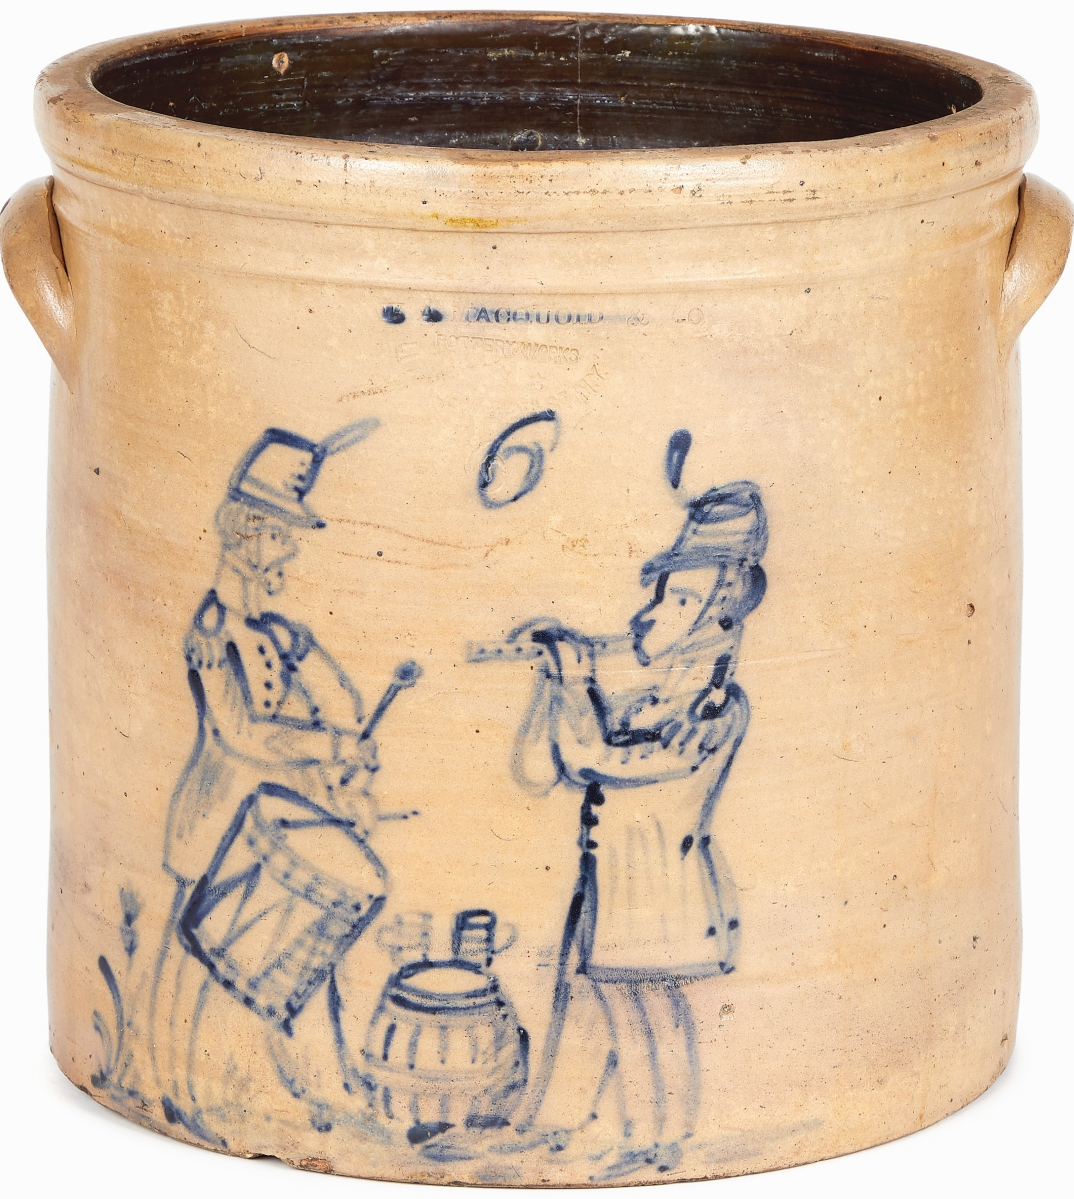 Two Civil War officers played a fife and drum around a keg in in this cobalt-brushed crock from Manhattan potter William Macquoid. It was the top lot in the sale as it sold to a Pennsylvania collector for $51,660.